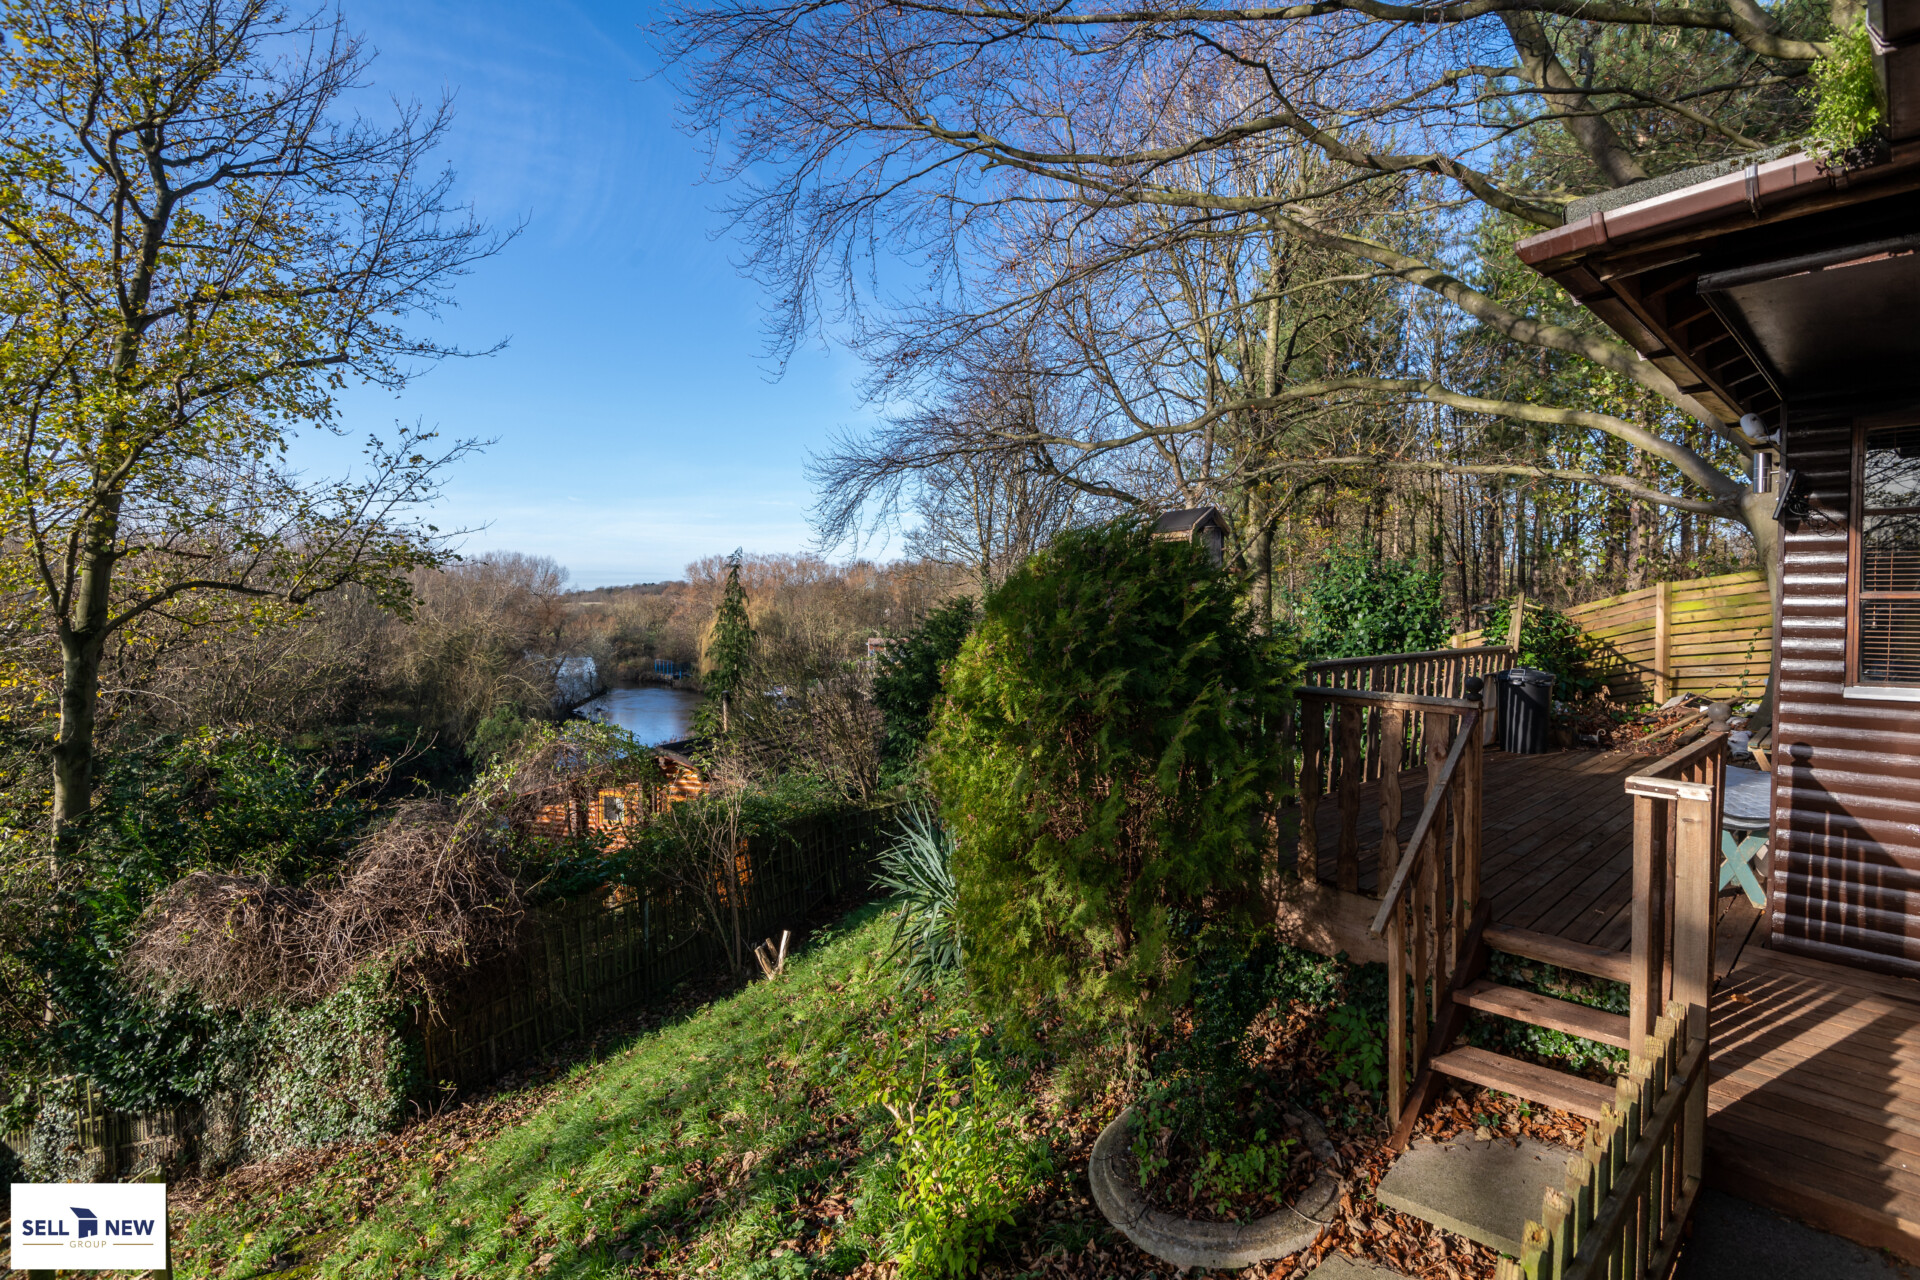 Toad Hall, Water Lane, Renhold, Bedford, MK41 – LOG CABIN WITH MOORING ONTO RIVER OUSE